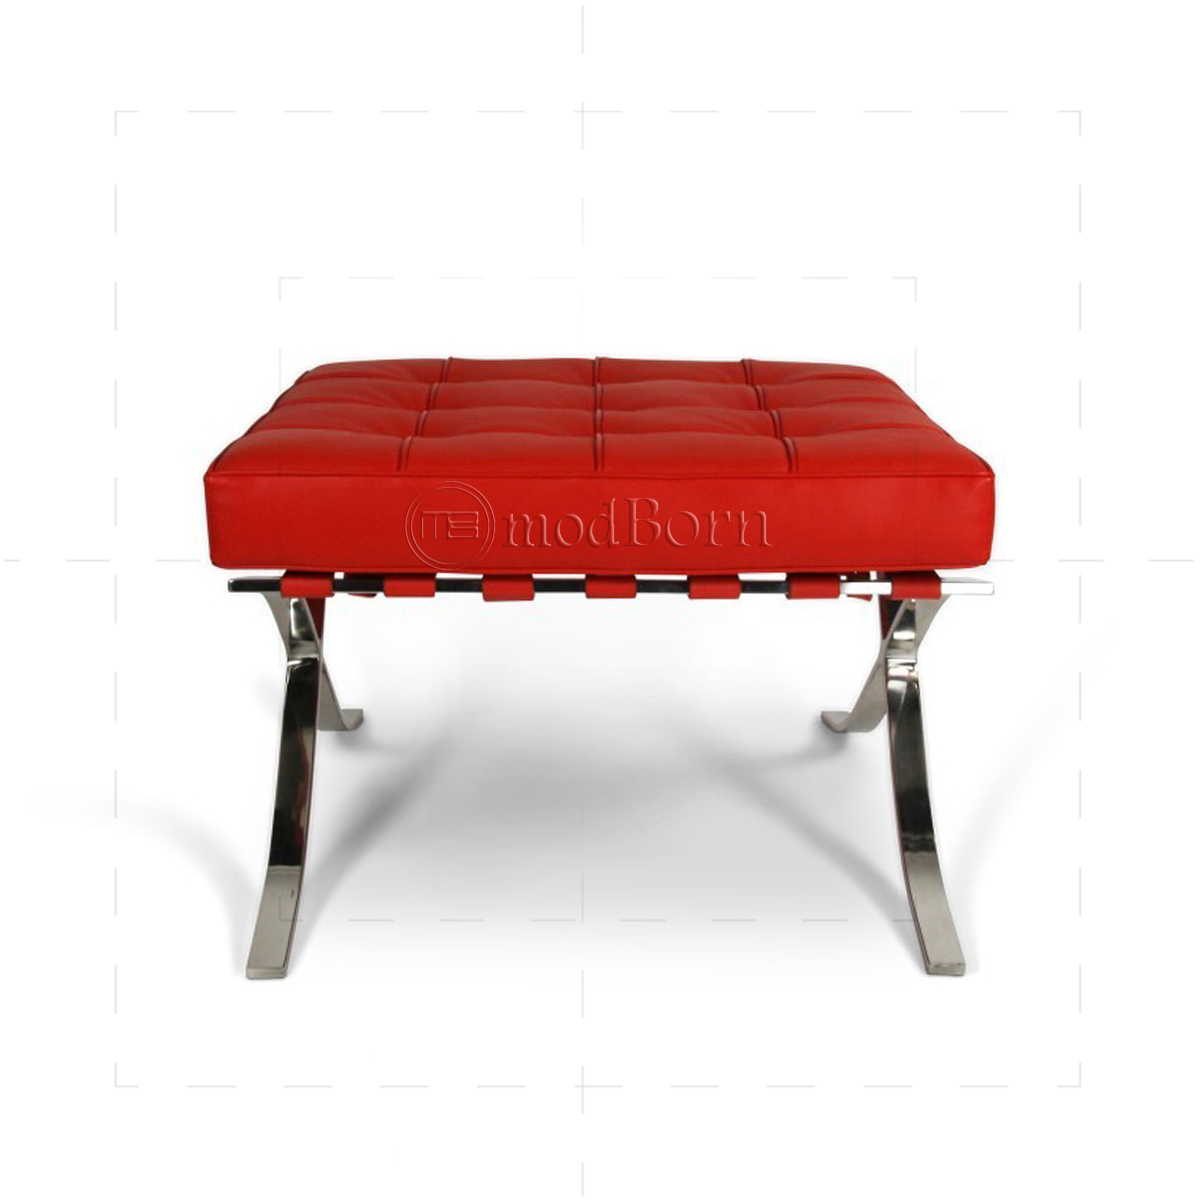 Ludwig mies van der rohe barcelona style ottoman red for Barcelona chair replica deutschland